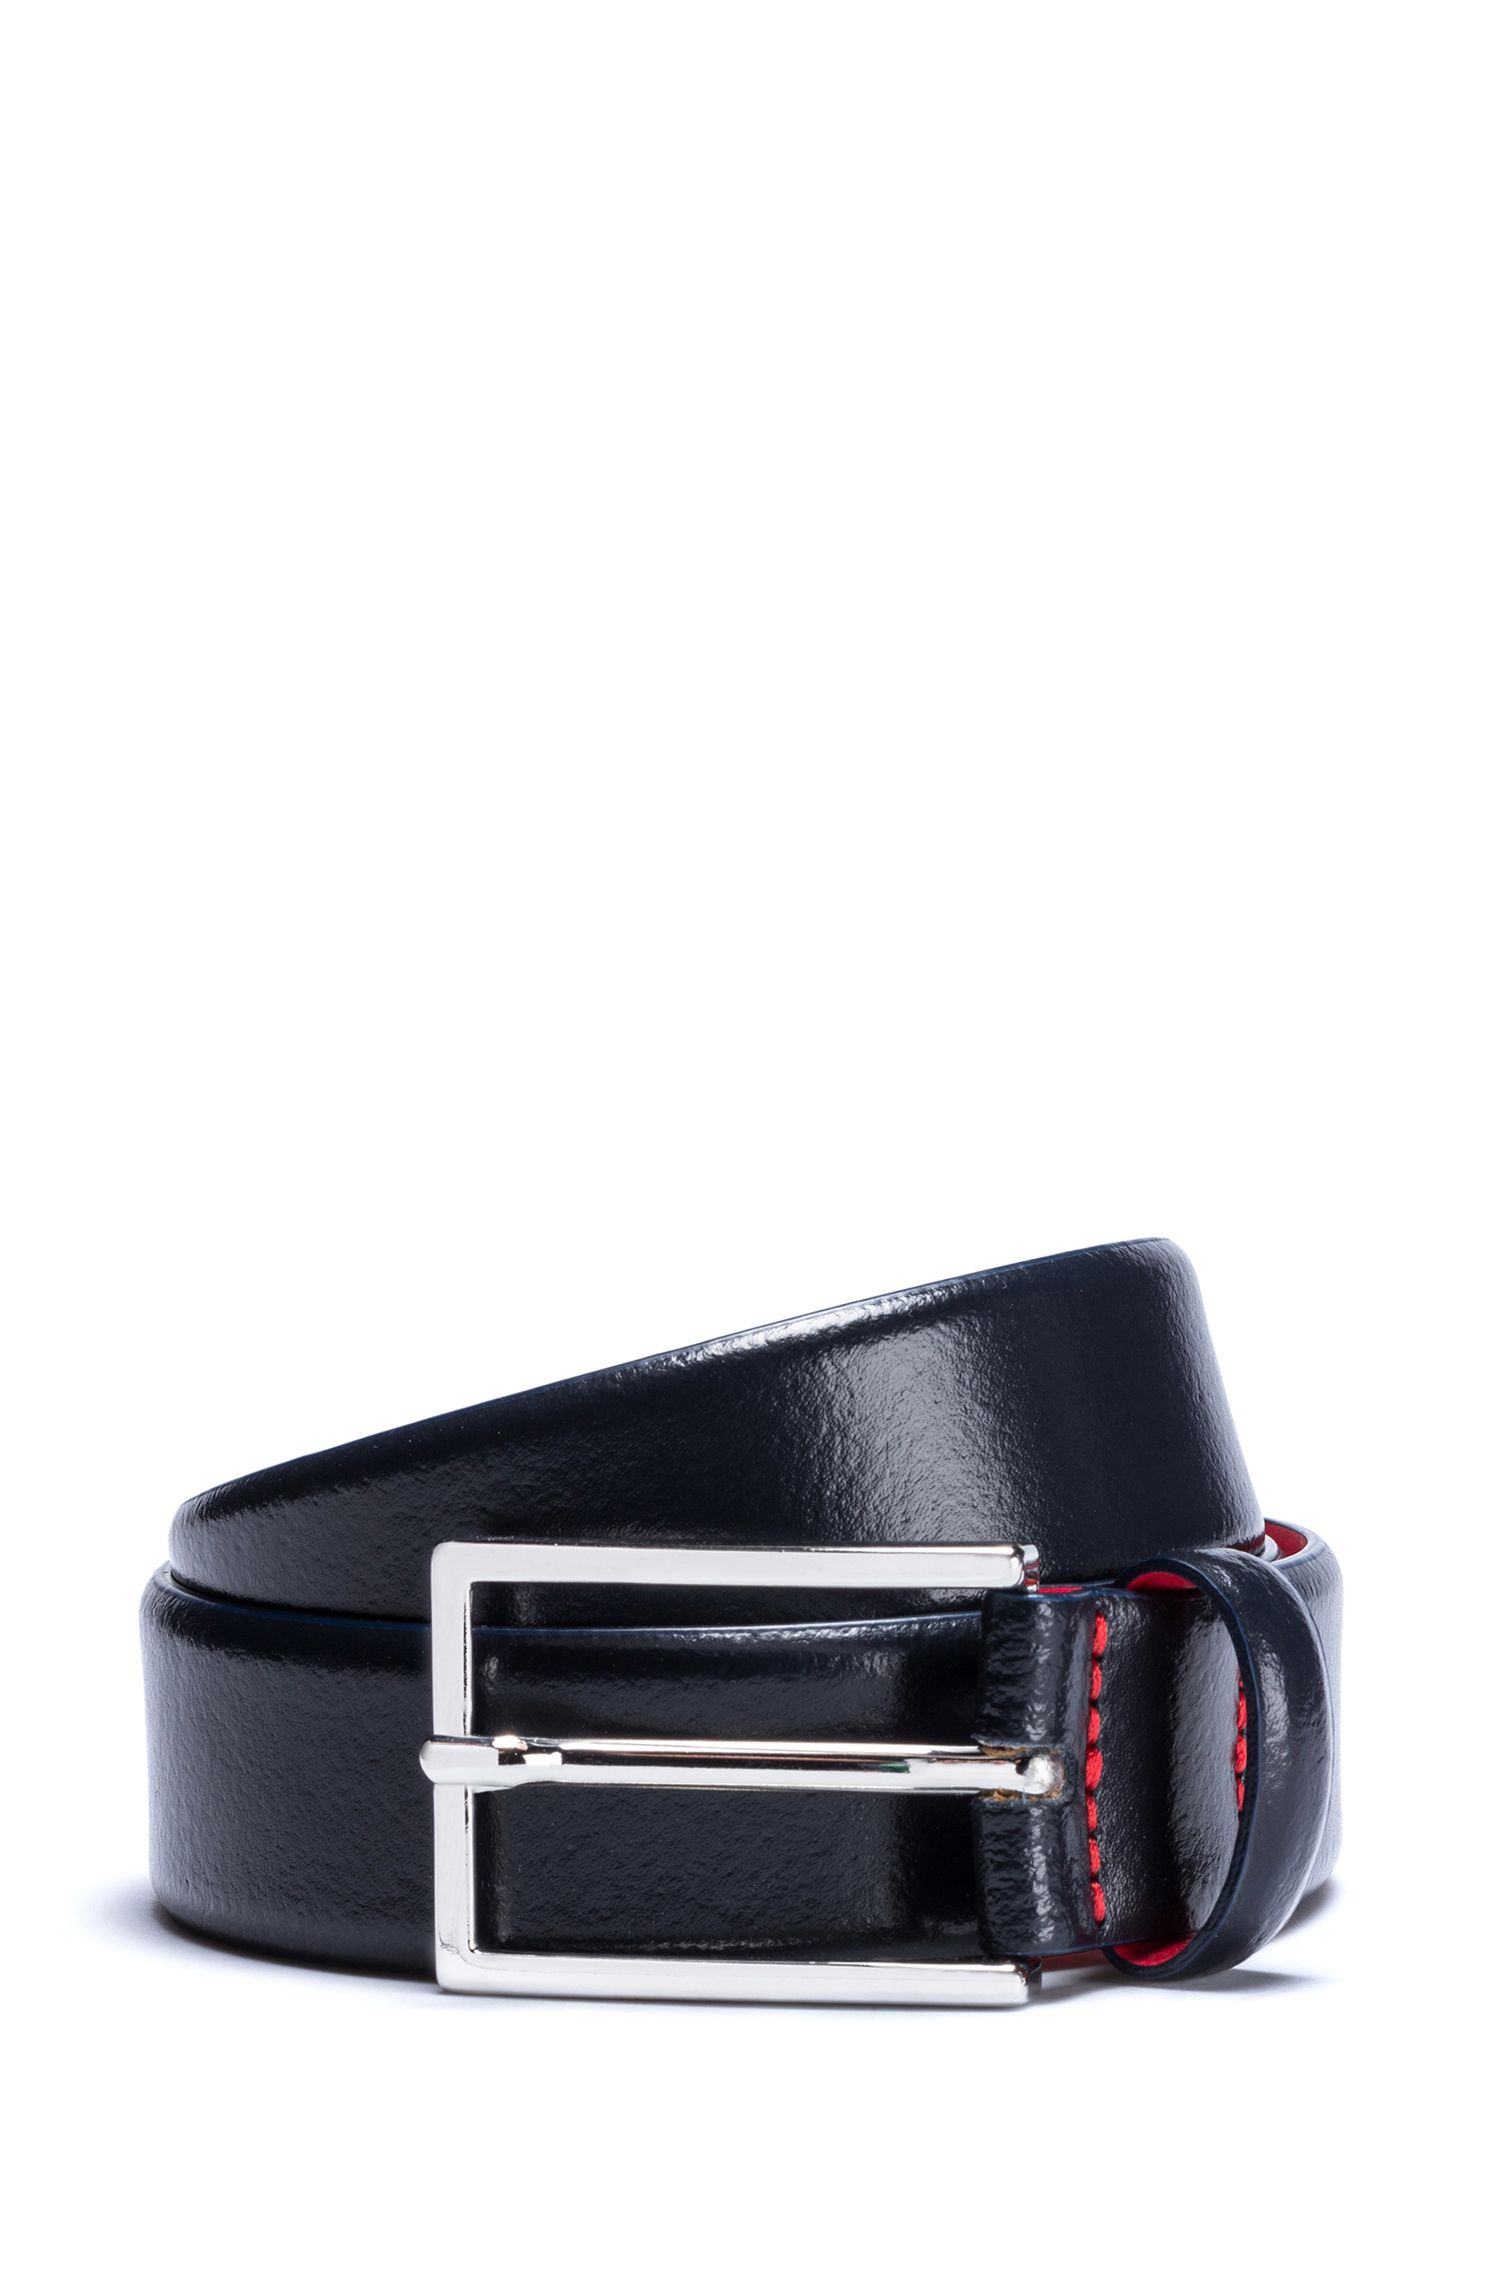 Leather belt with pigmented coating